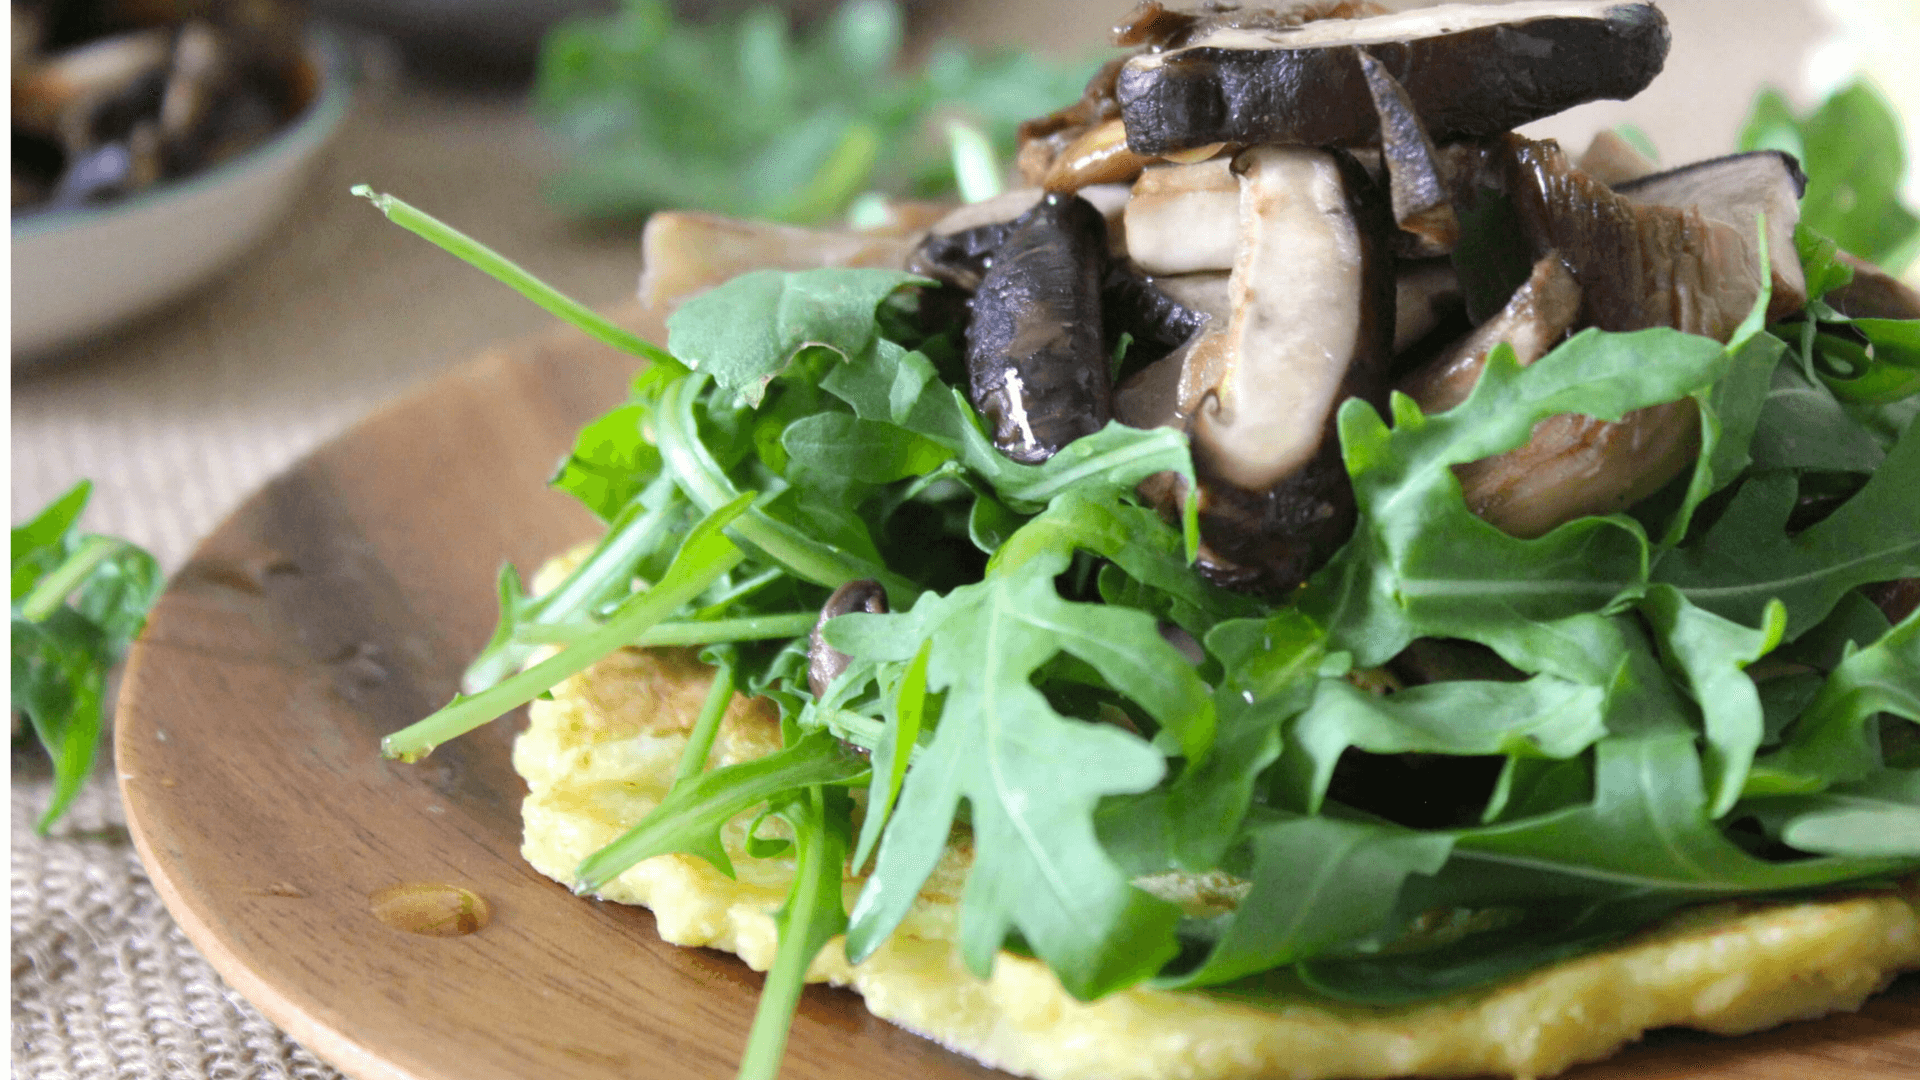 Cauliflower pancakes with wild mushrooms